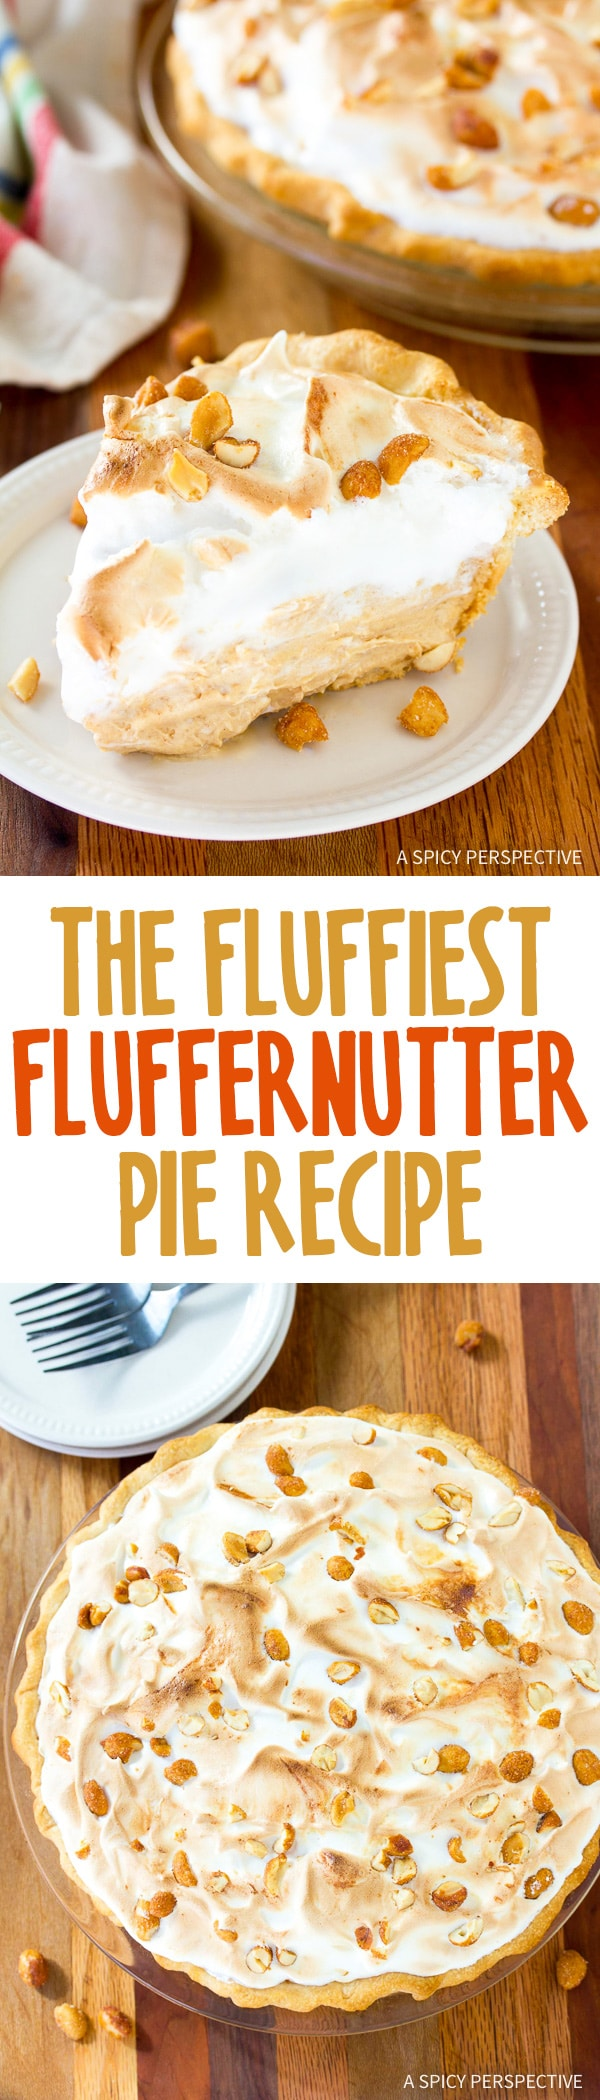 Awesome! The Fluffiest Fluffernutter Pie Recipe